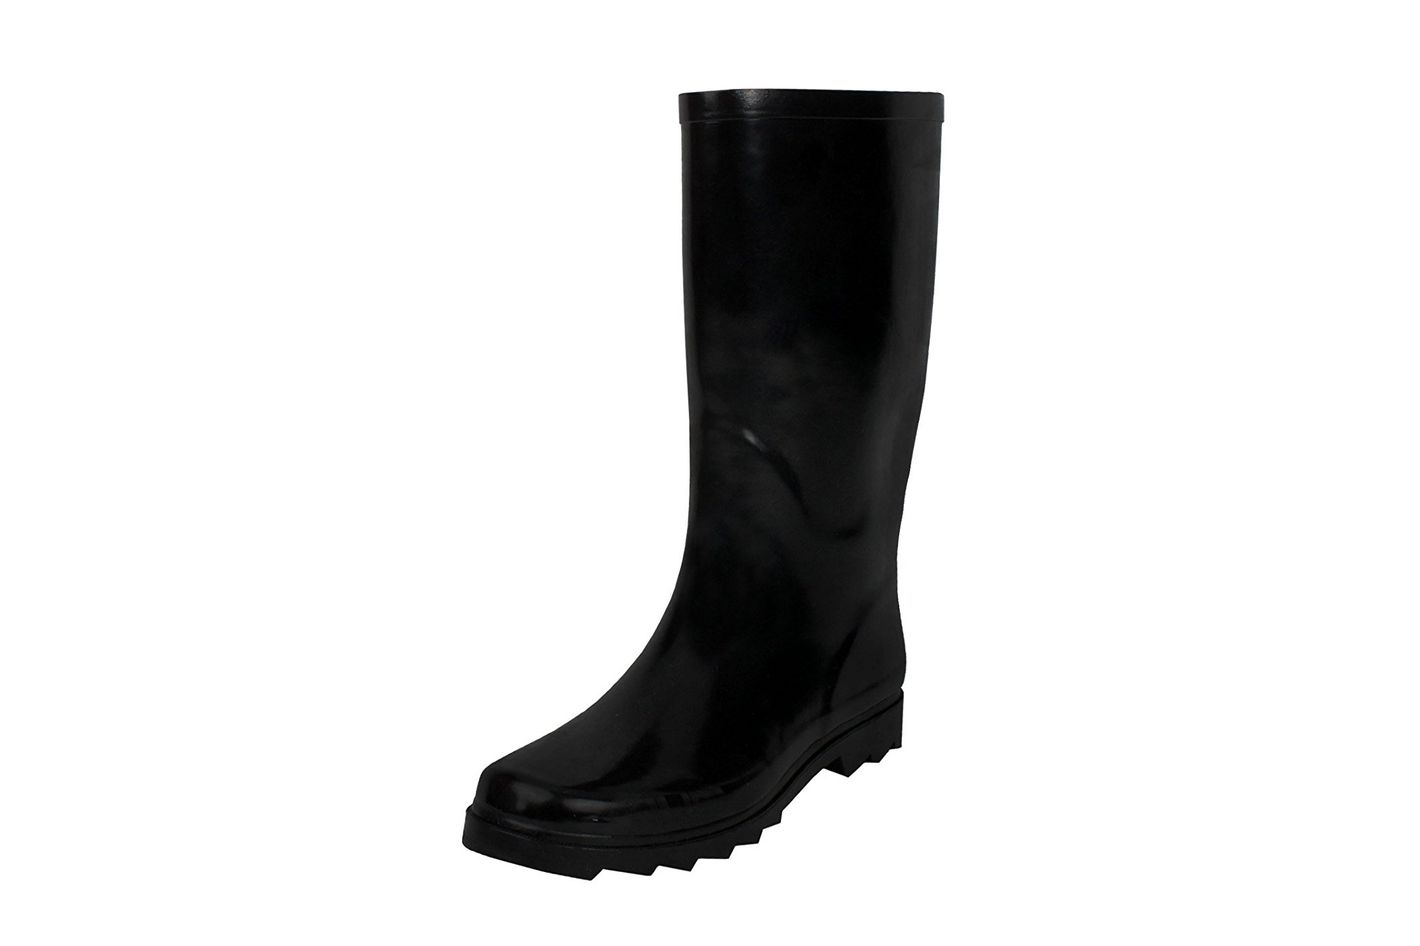 bafe5b4d4f56 West Blvd Women s Mid-Calf Rain Boots